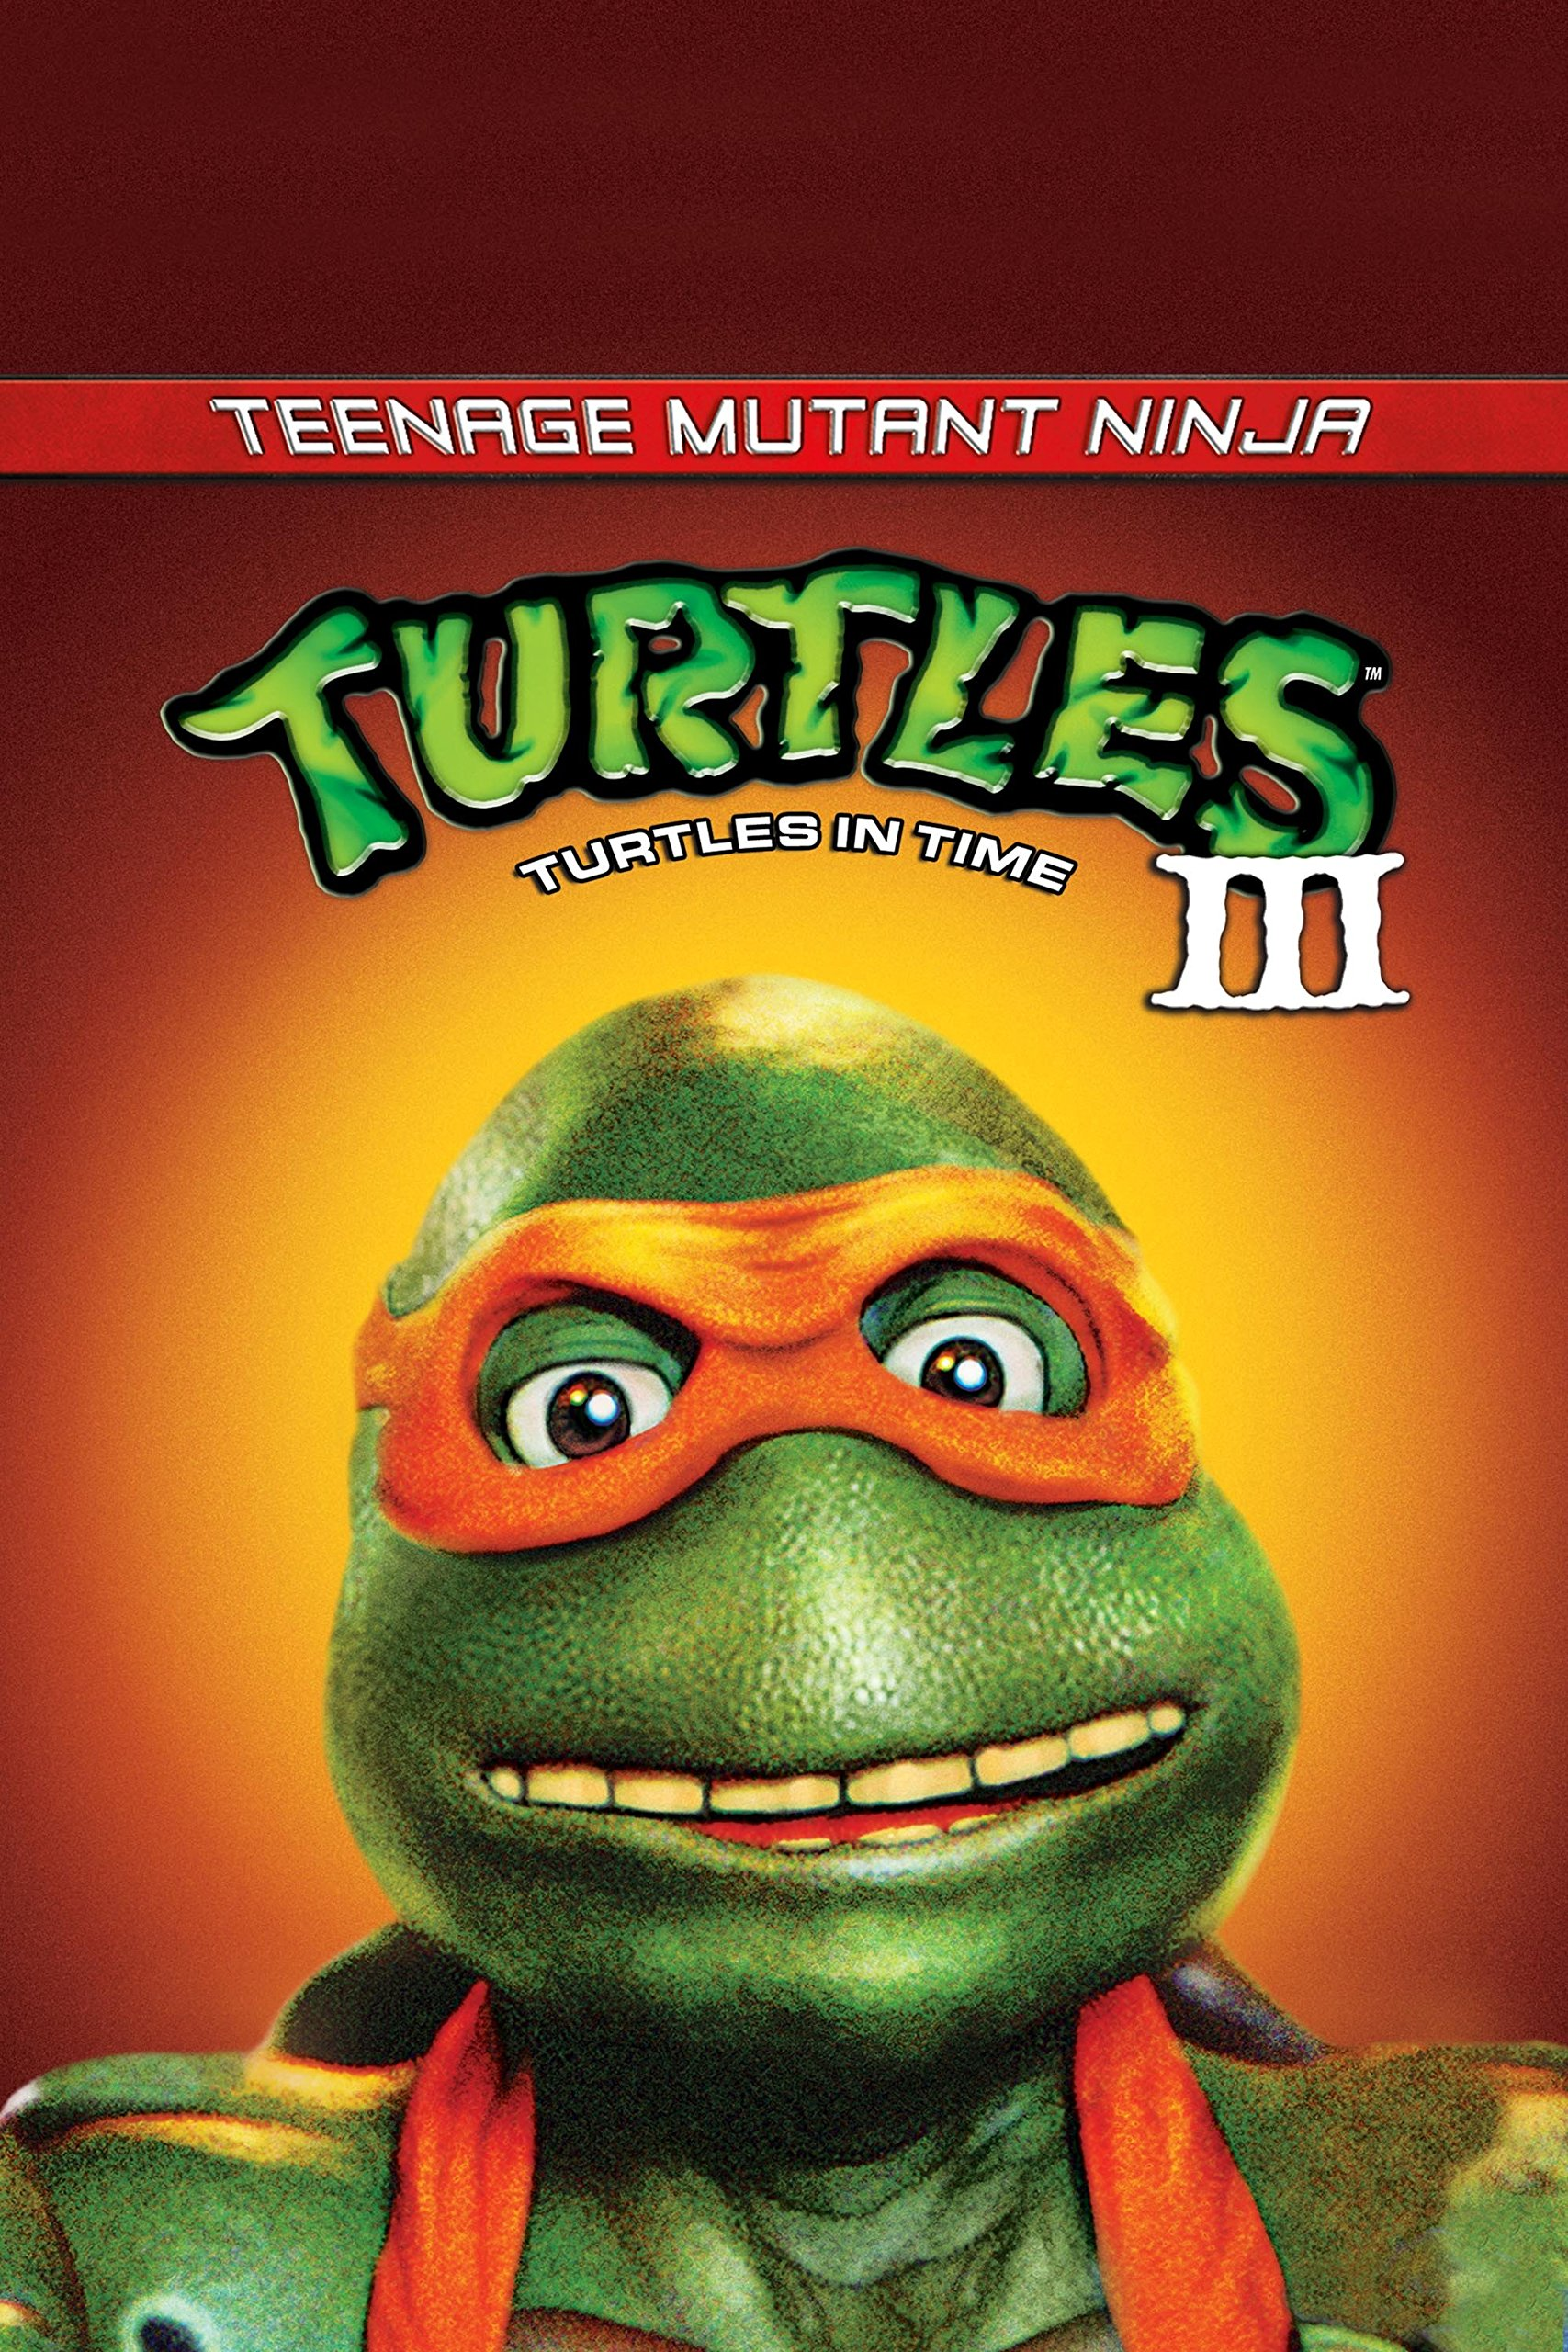 Amazon.com: Watch Teenage Mutant Ninja Turtles 3 | Prime Video